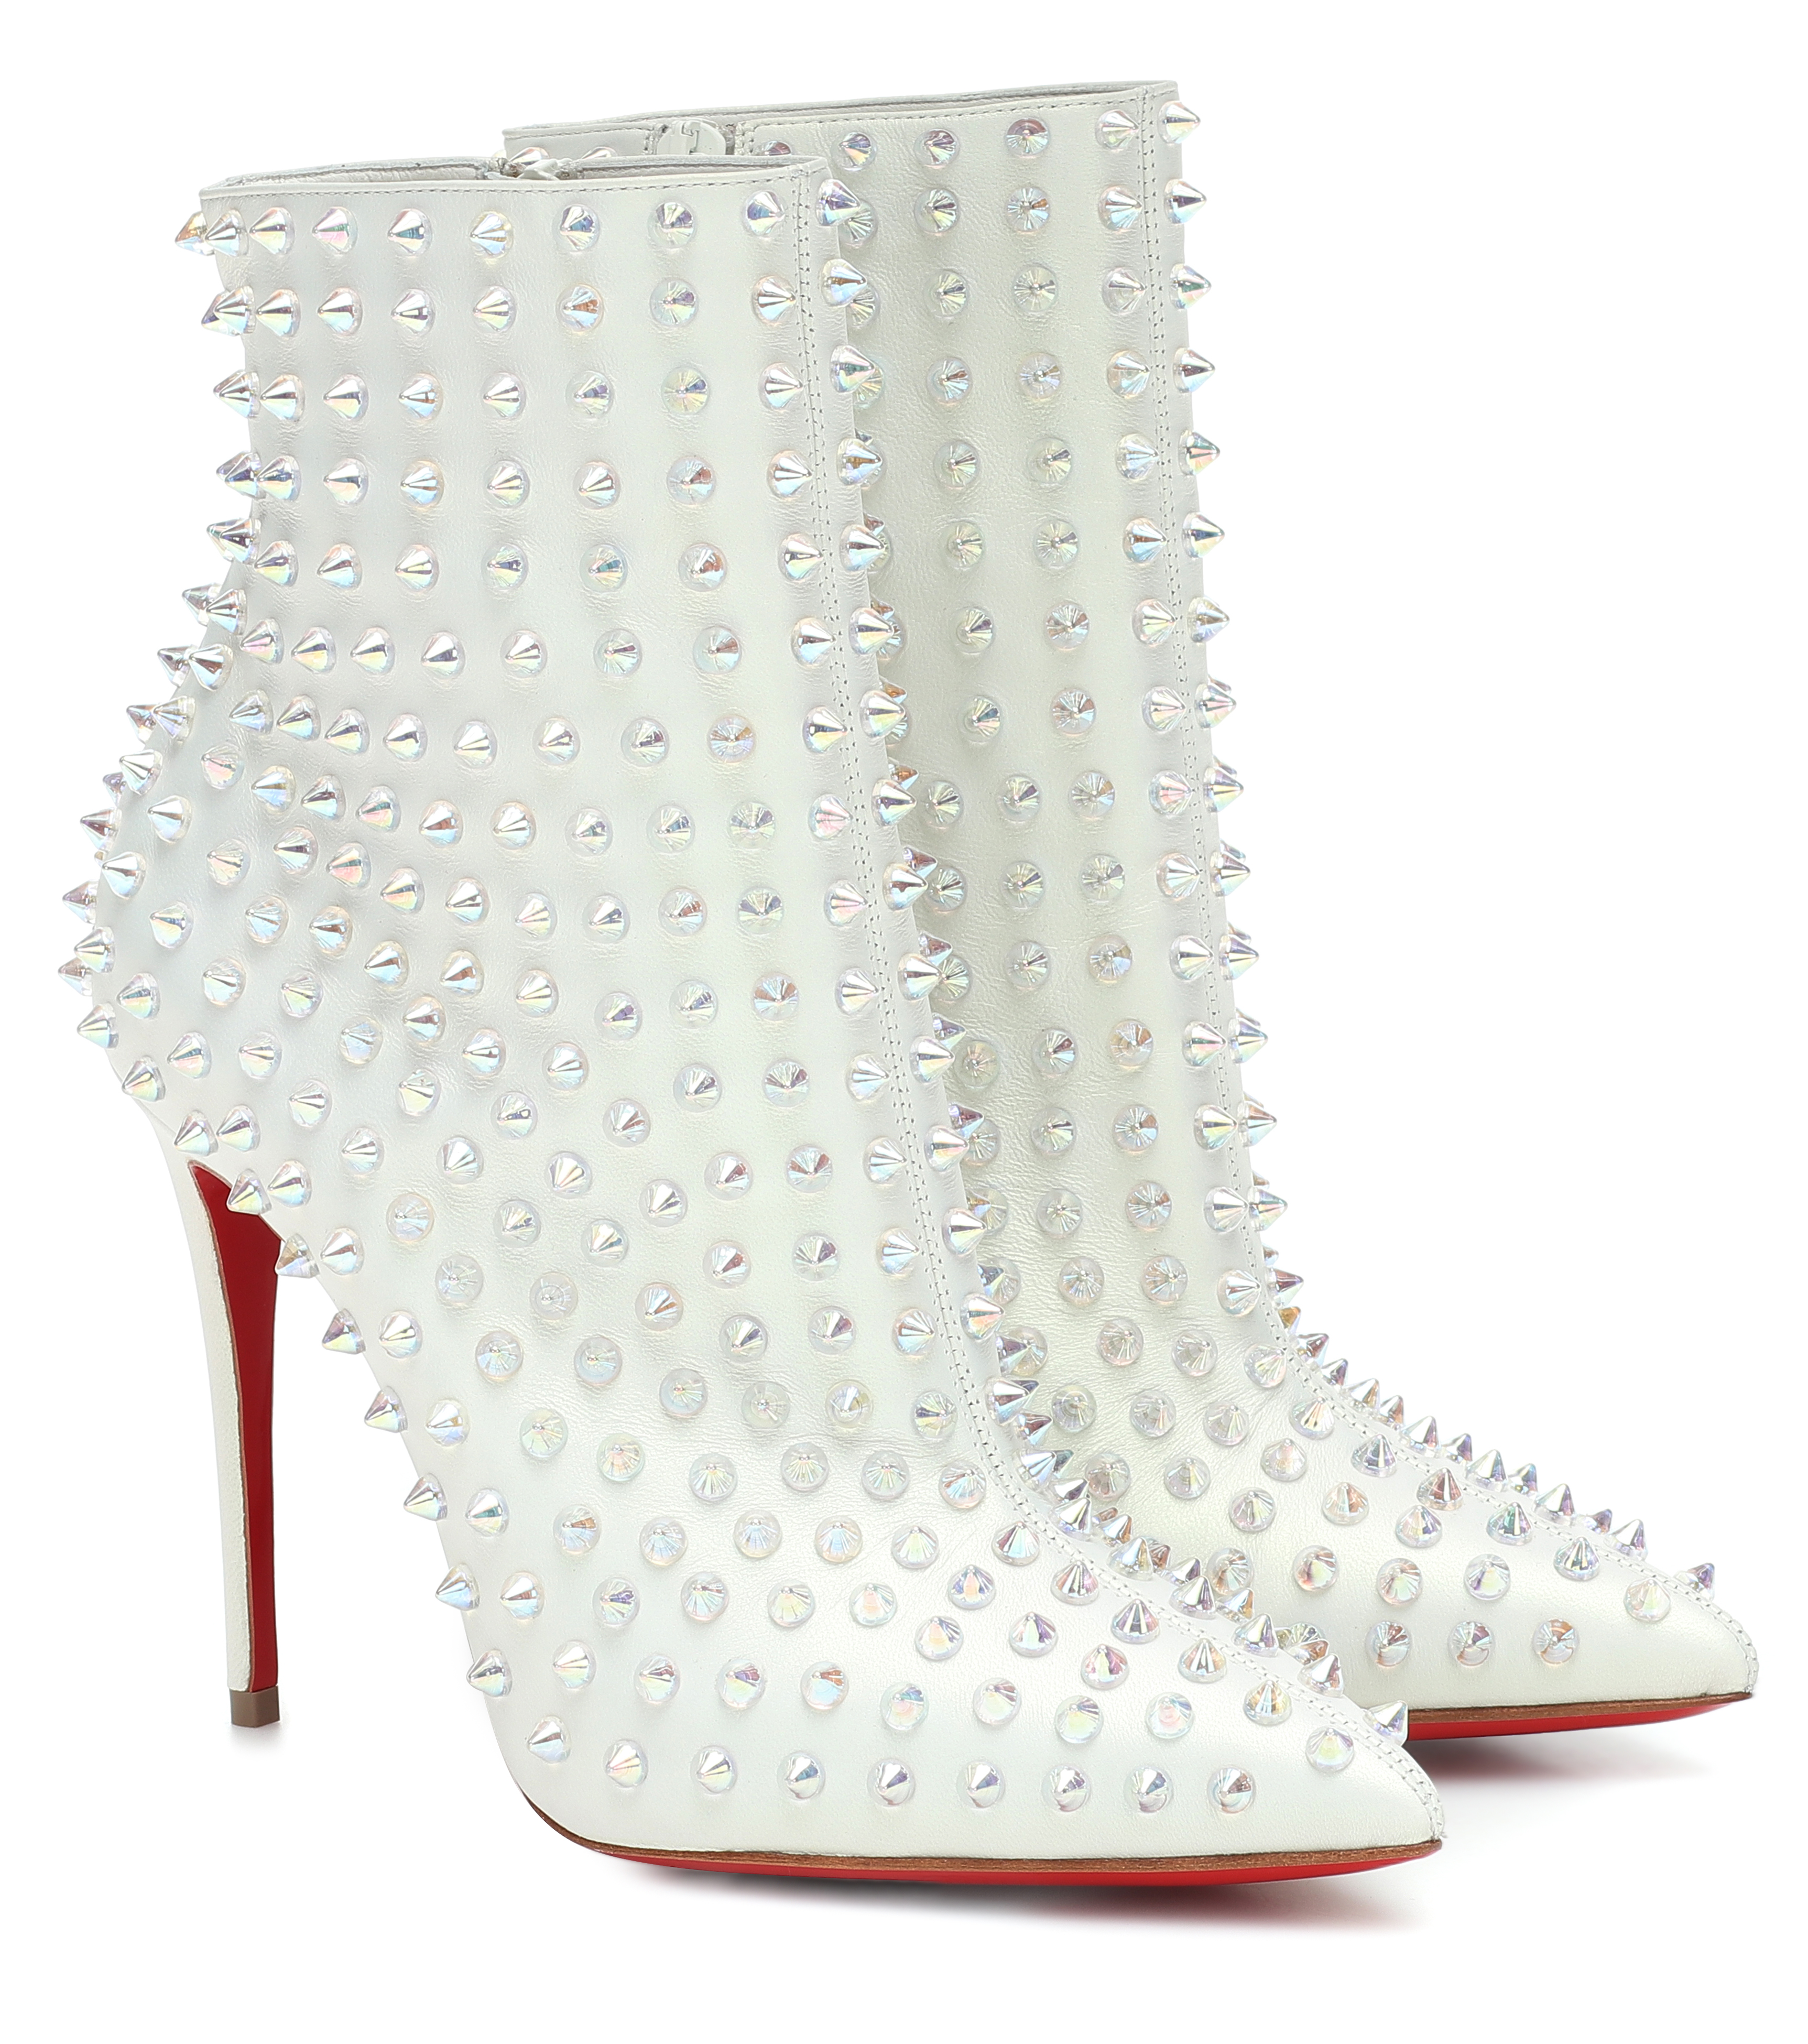 Mytheresa's exclusive capsule collection with Christian Louboutin is now available (фото 11)